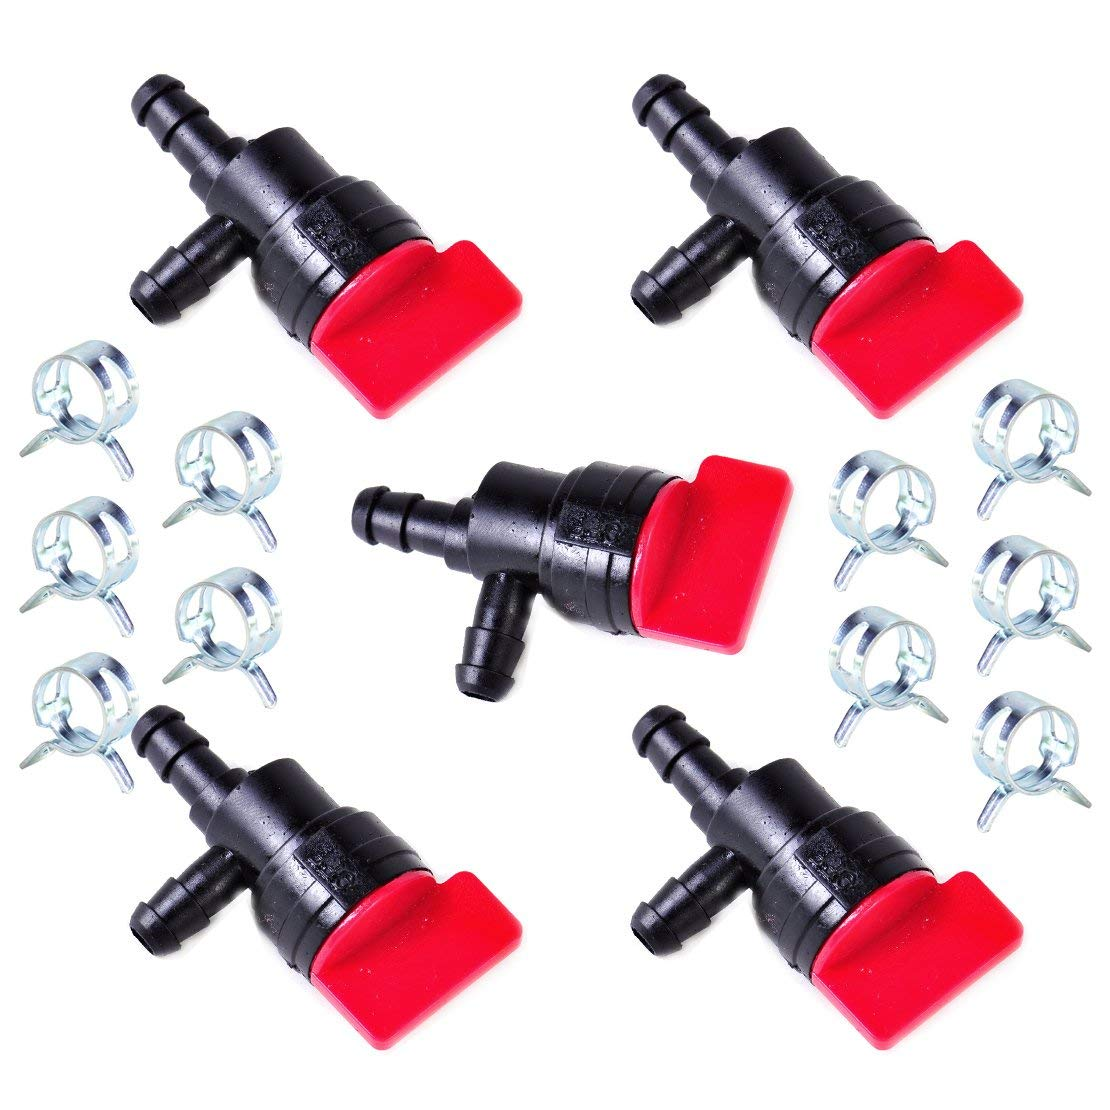 """Daphot-Store - 5pcs 1/4"""" InLine 90 Degree Gas Fuel Cut/Shut Off Valve Petcock + 10pcs 1/2"""" Clamps for Briggs Stratton Mowers Motorcycles"""